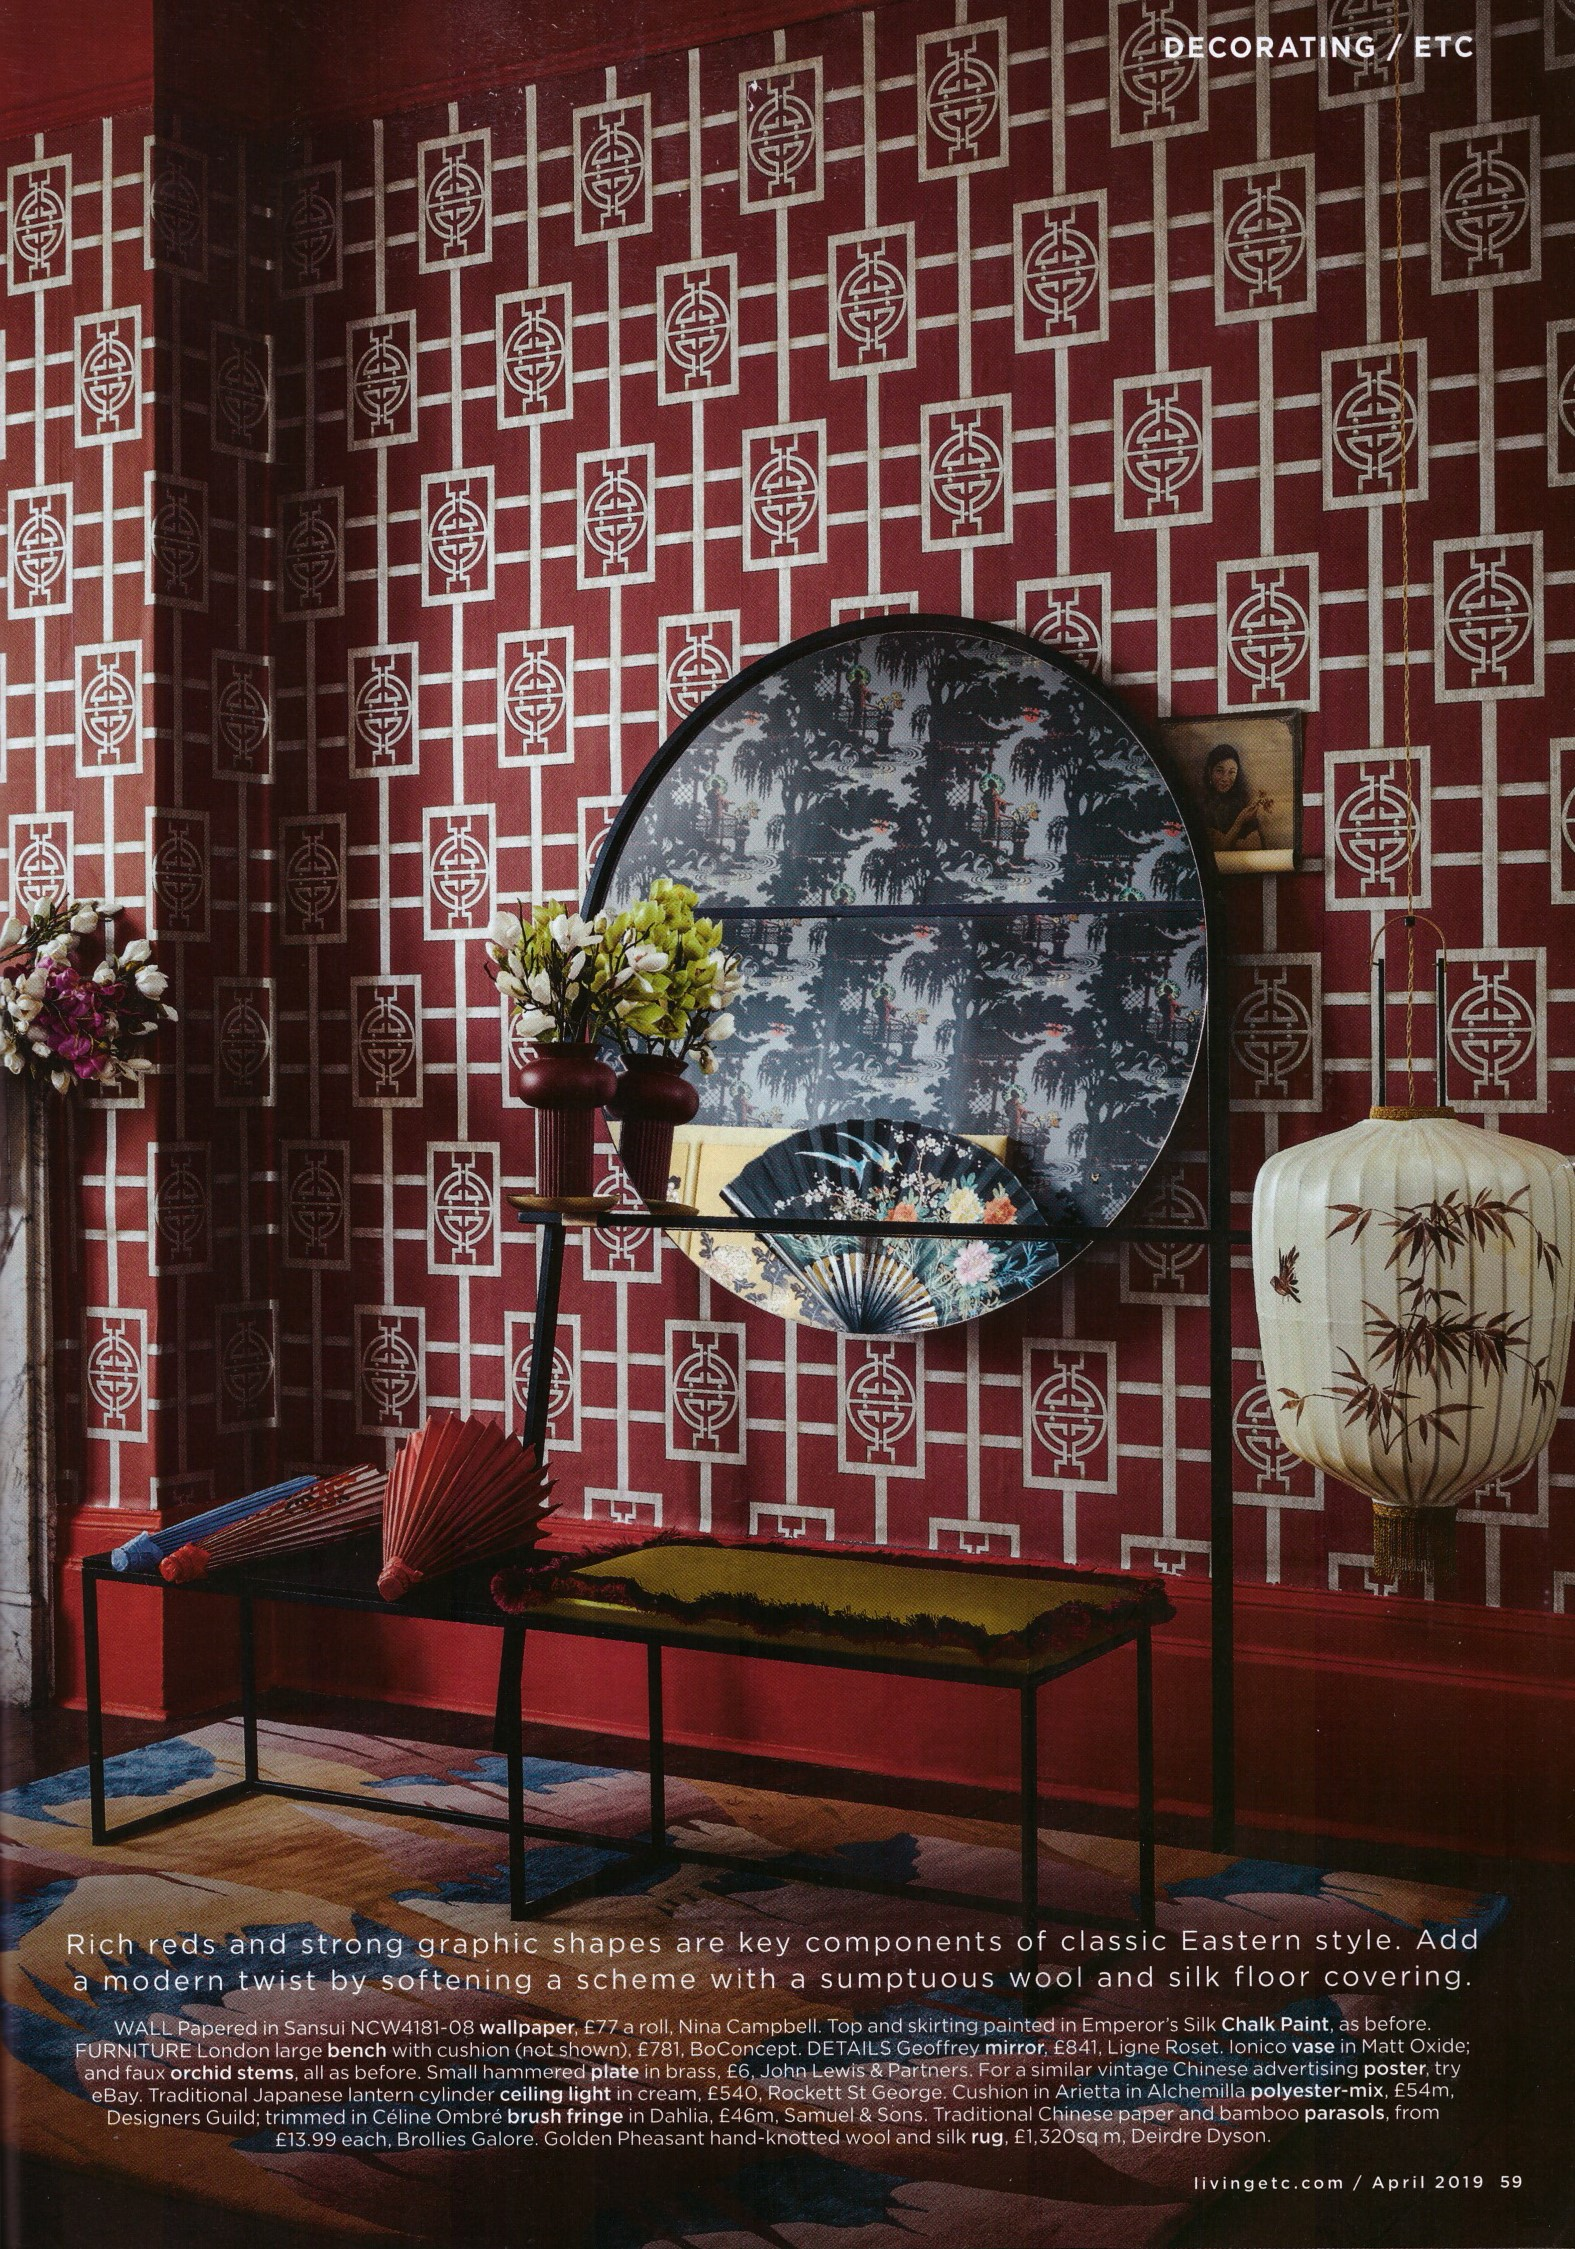 Ligne Roset's Geoffrey mirror and Annie Sloan Emperor's Silk in Living etc's contemporary take on classic Chinoiserie